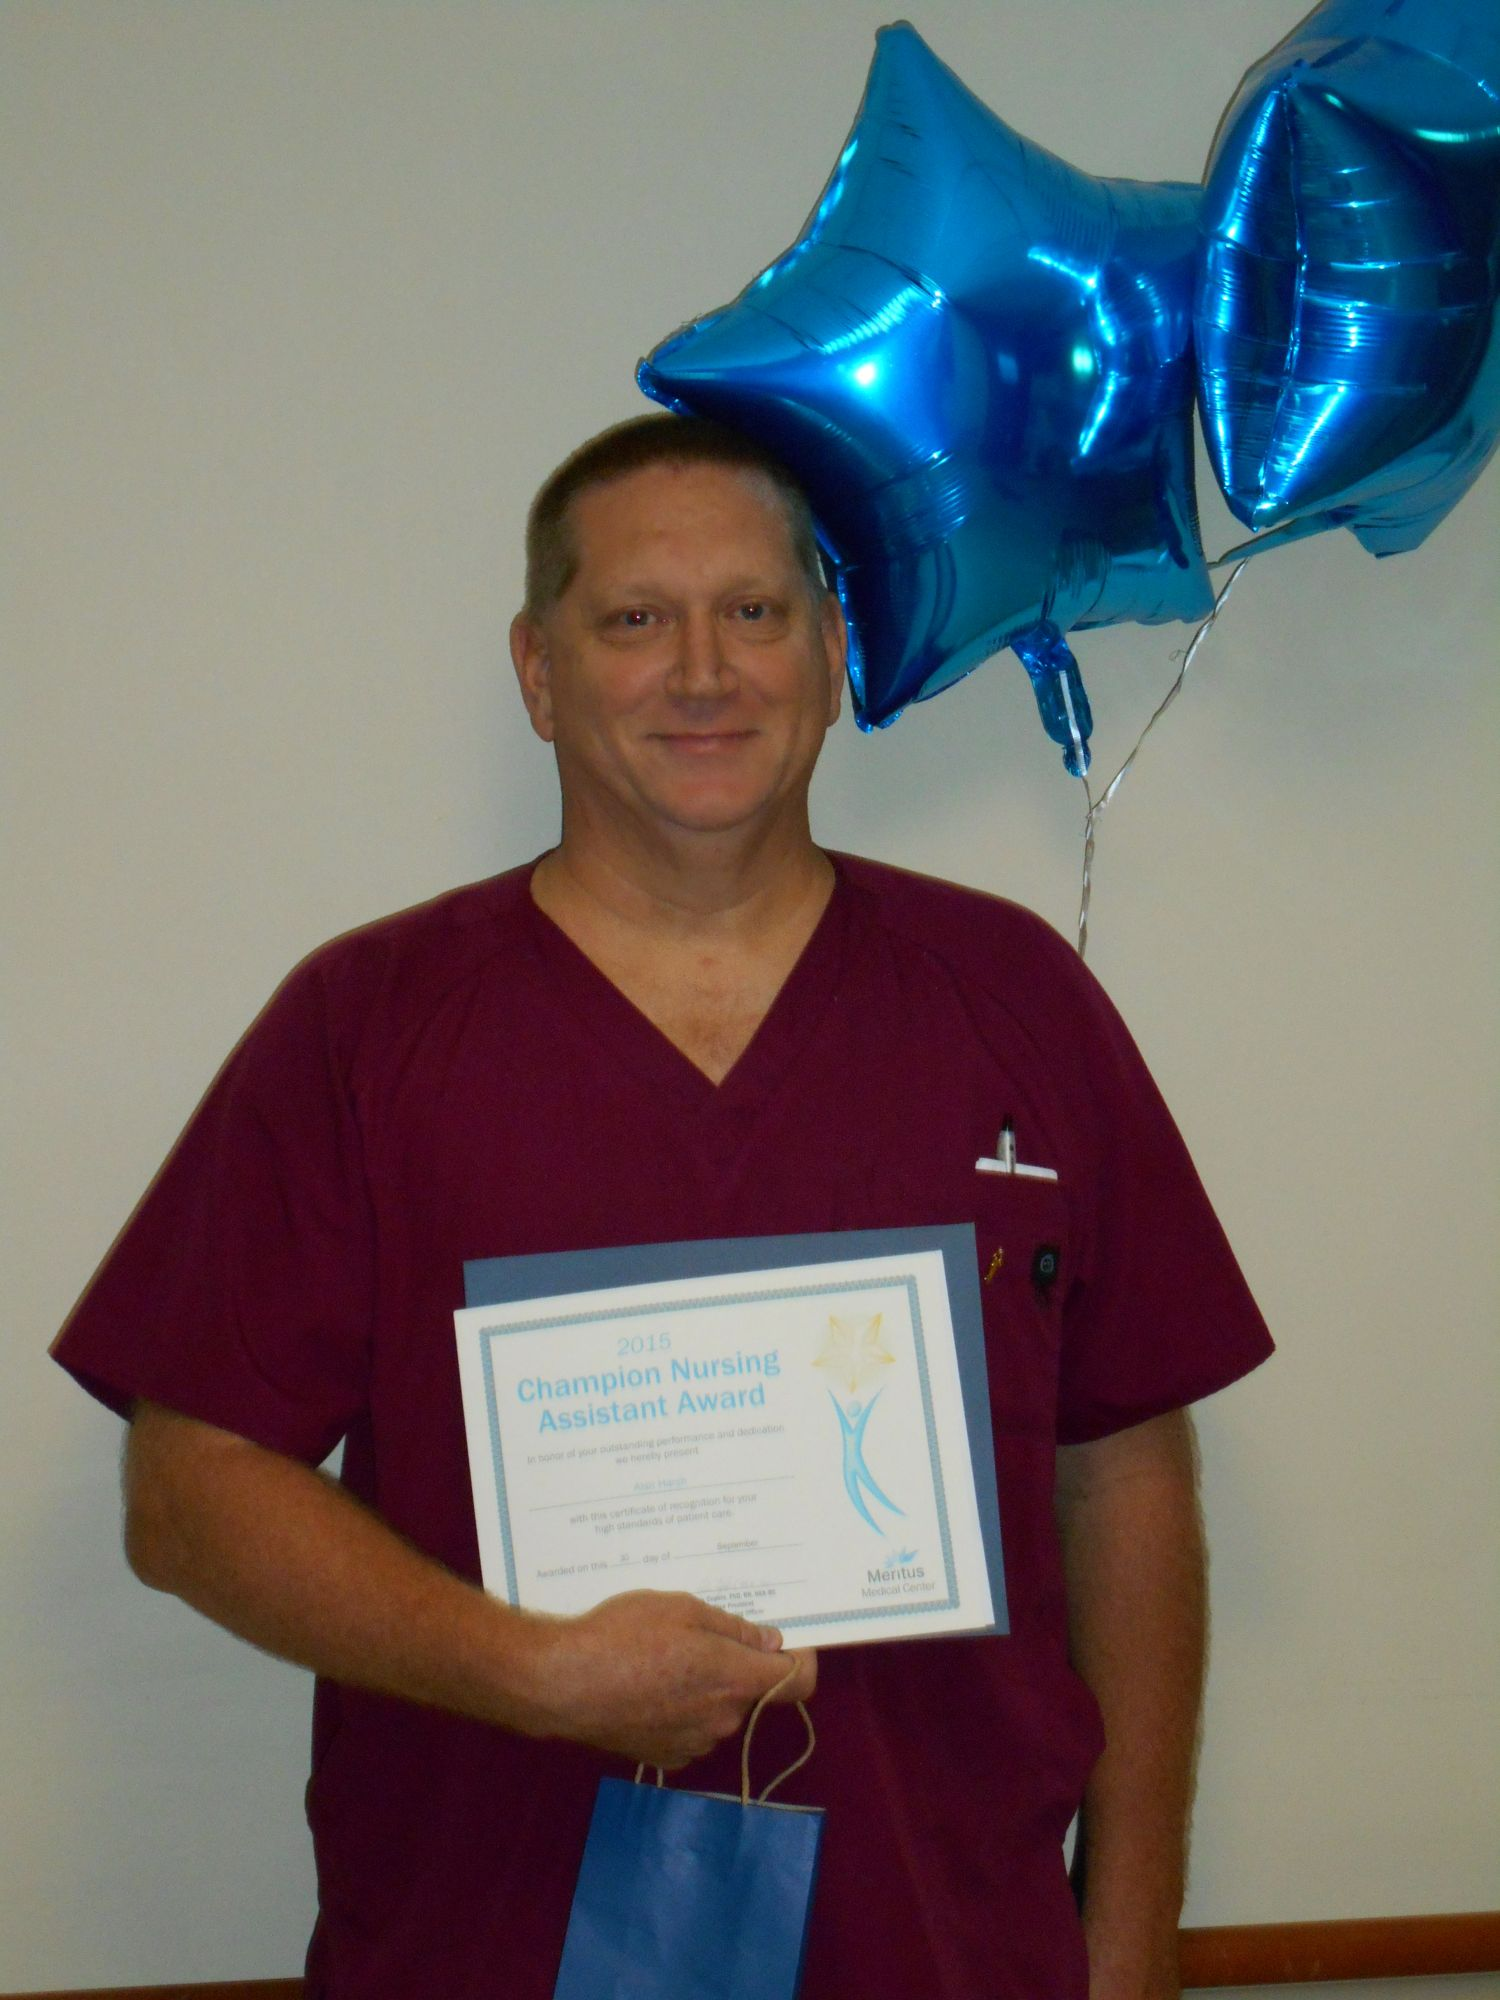 Champion Nursing Assistant Named for the Fall